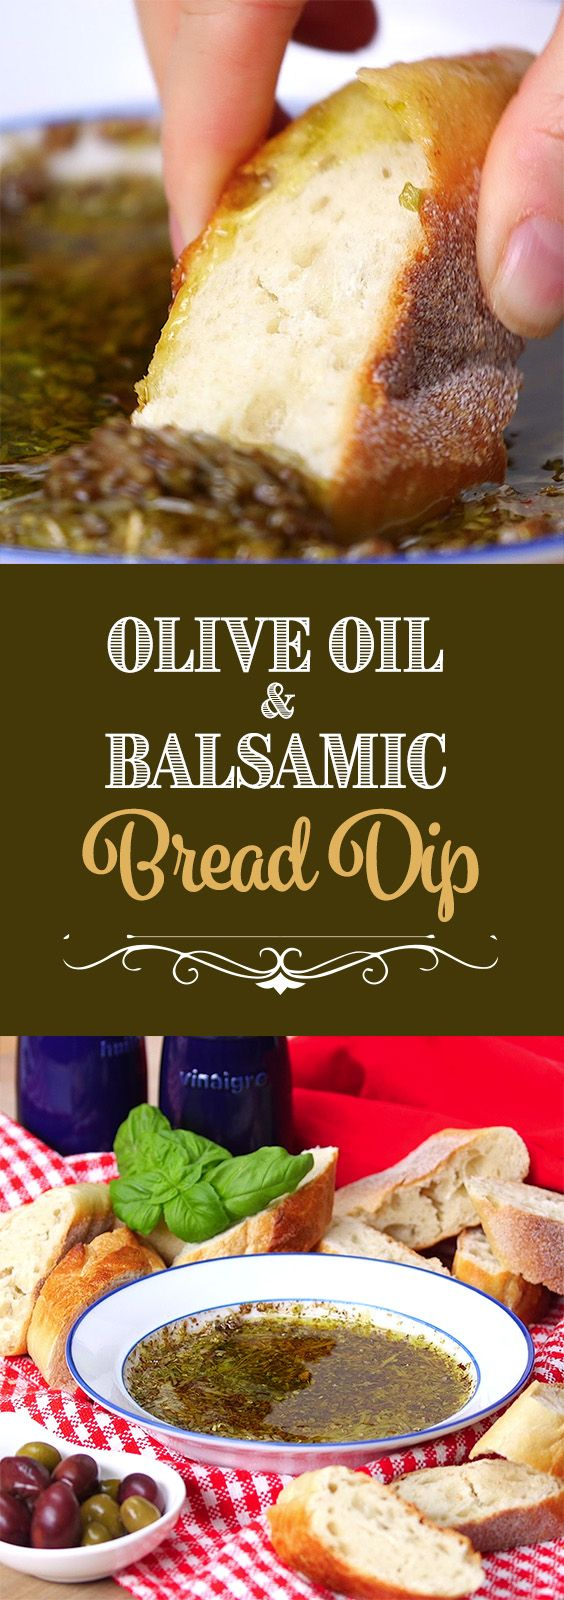 Olive Oil & Balsamic Bread Dip